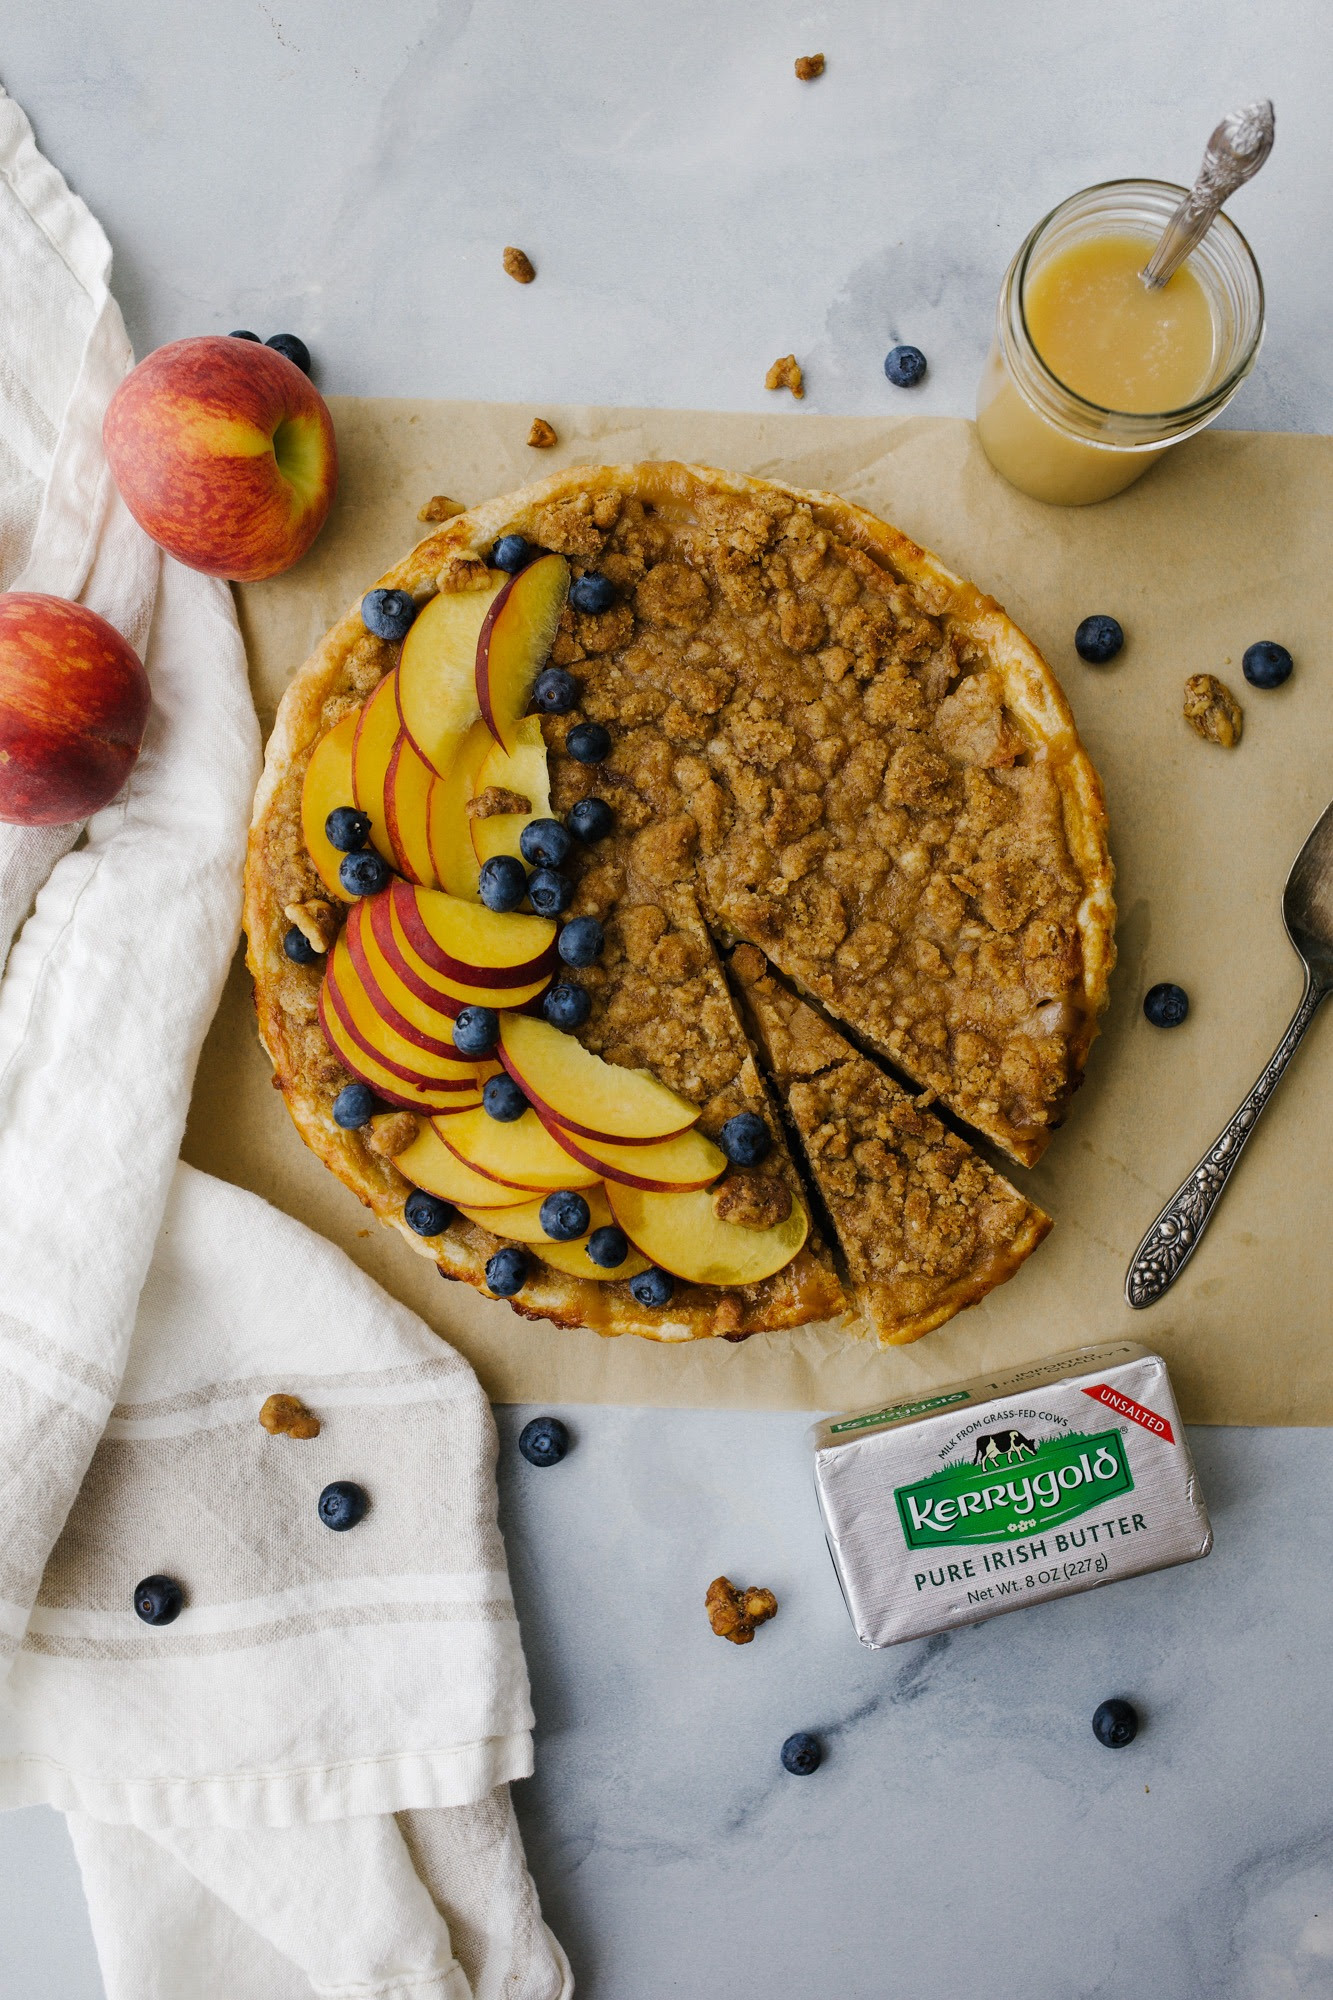 Honey Peach Pie by Wood and Spoon. This is an all butter pie crust filled with a honey caramel and fresh peaches and topped with a brown butter crumble. This pie bakes up scented with honey and juicy peaches and the crust and crumble add a bit of salt to offset the sweet. This is a great summer recipe to use fresh produce and make homemade pie tarts. Learn more about this dessert for a crowd at thewoodandspoon.com